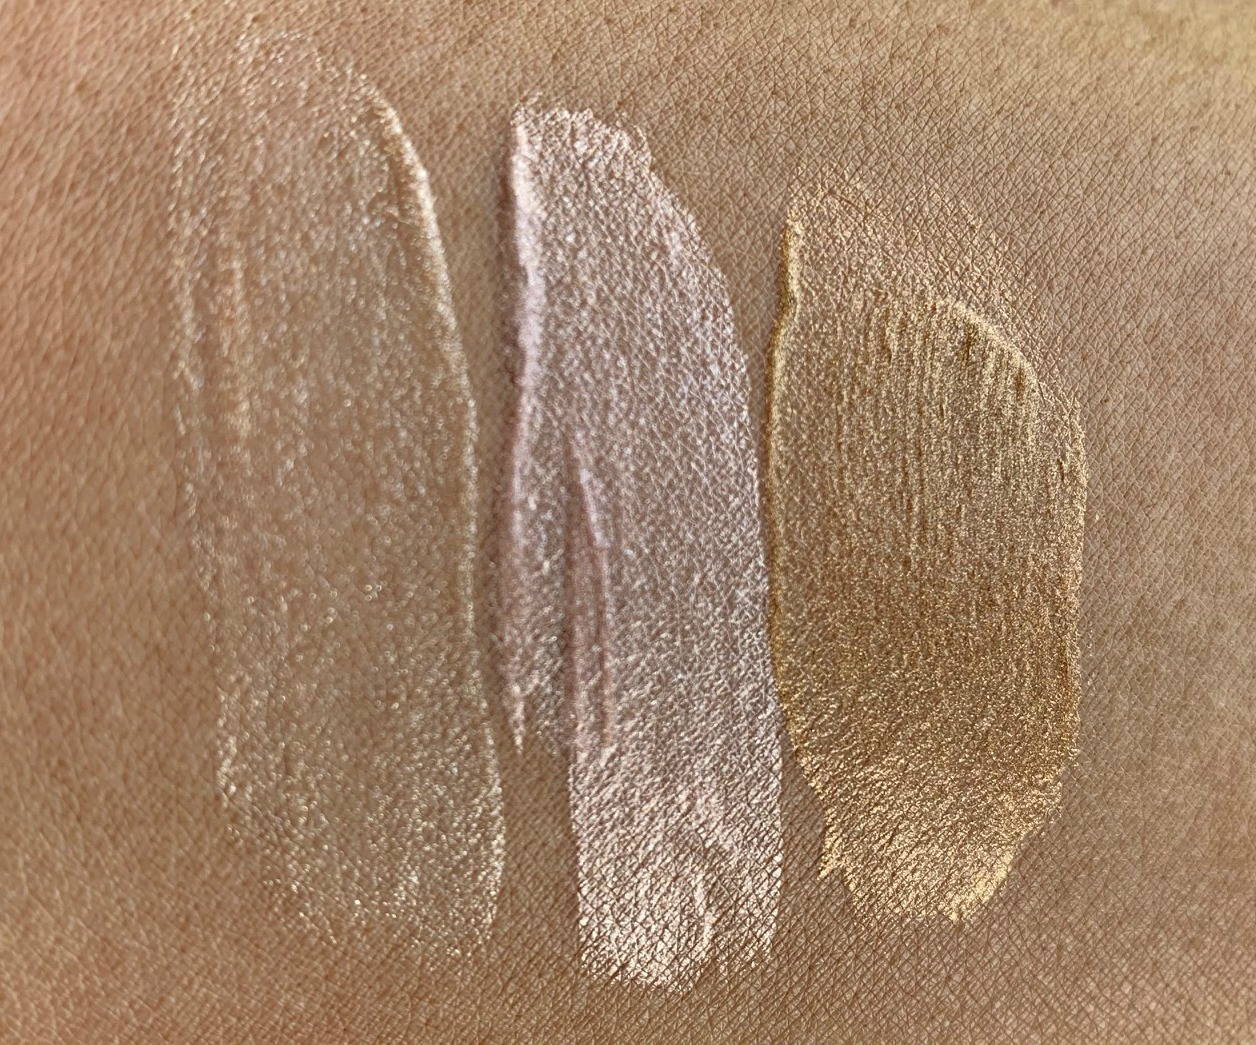 Bali Body Highlighter Sticks Review & Swatches